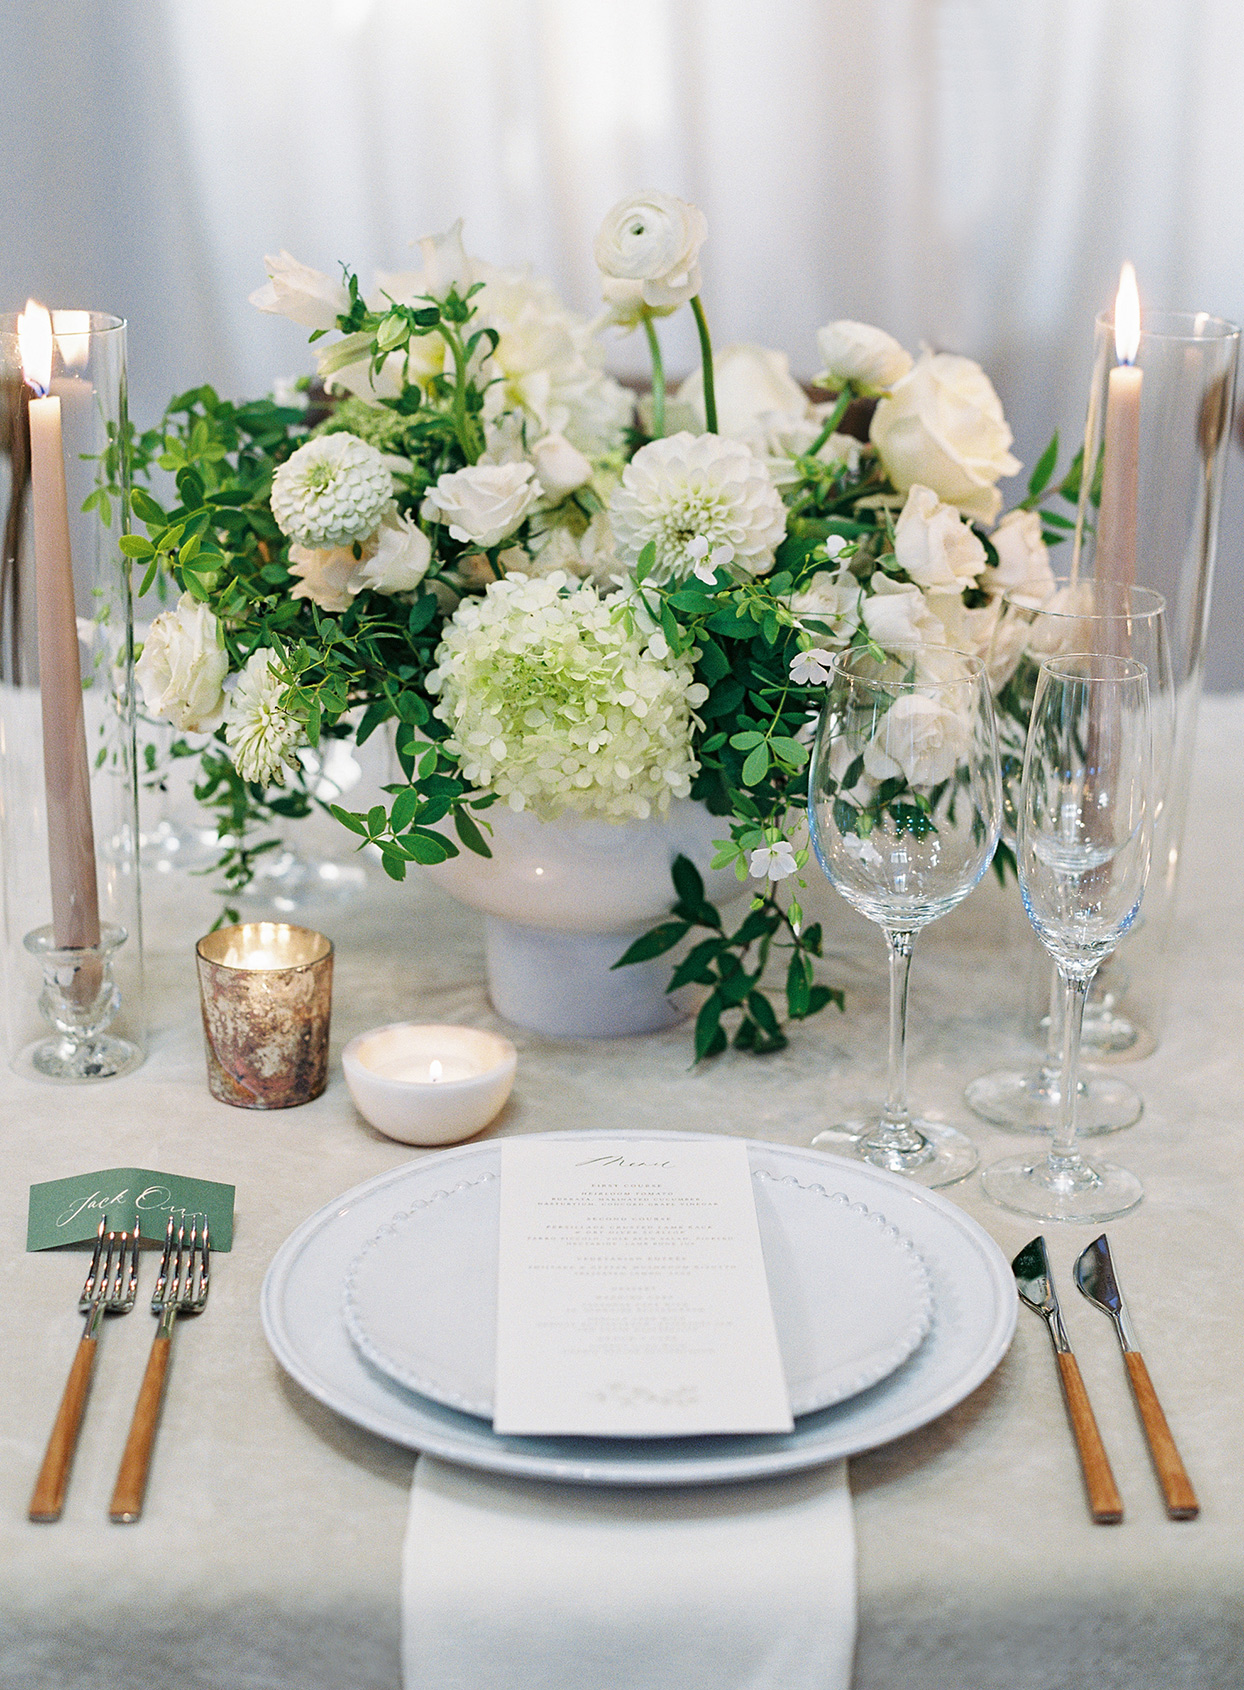 elegant white and green place setting with floral bouquet centerpiece